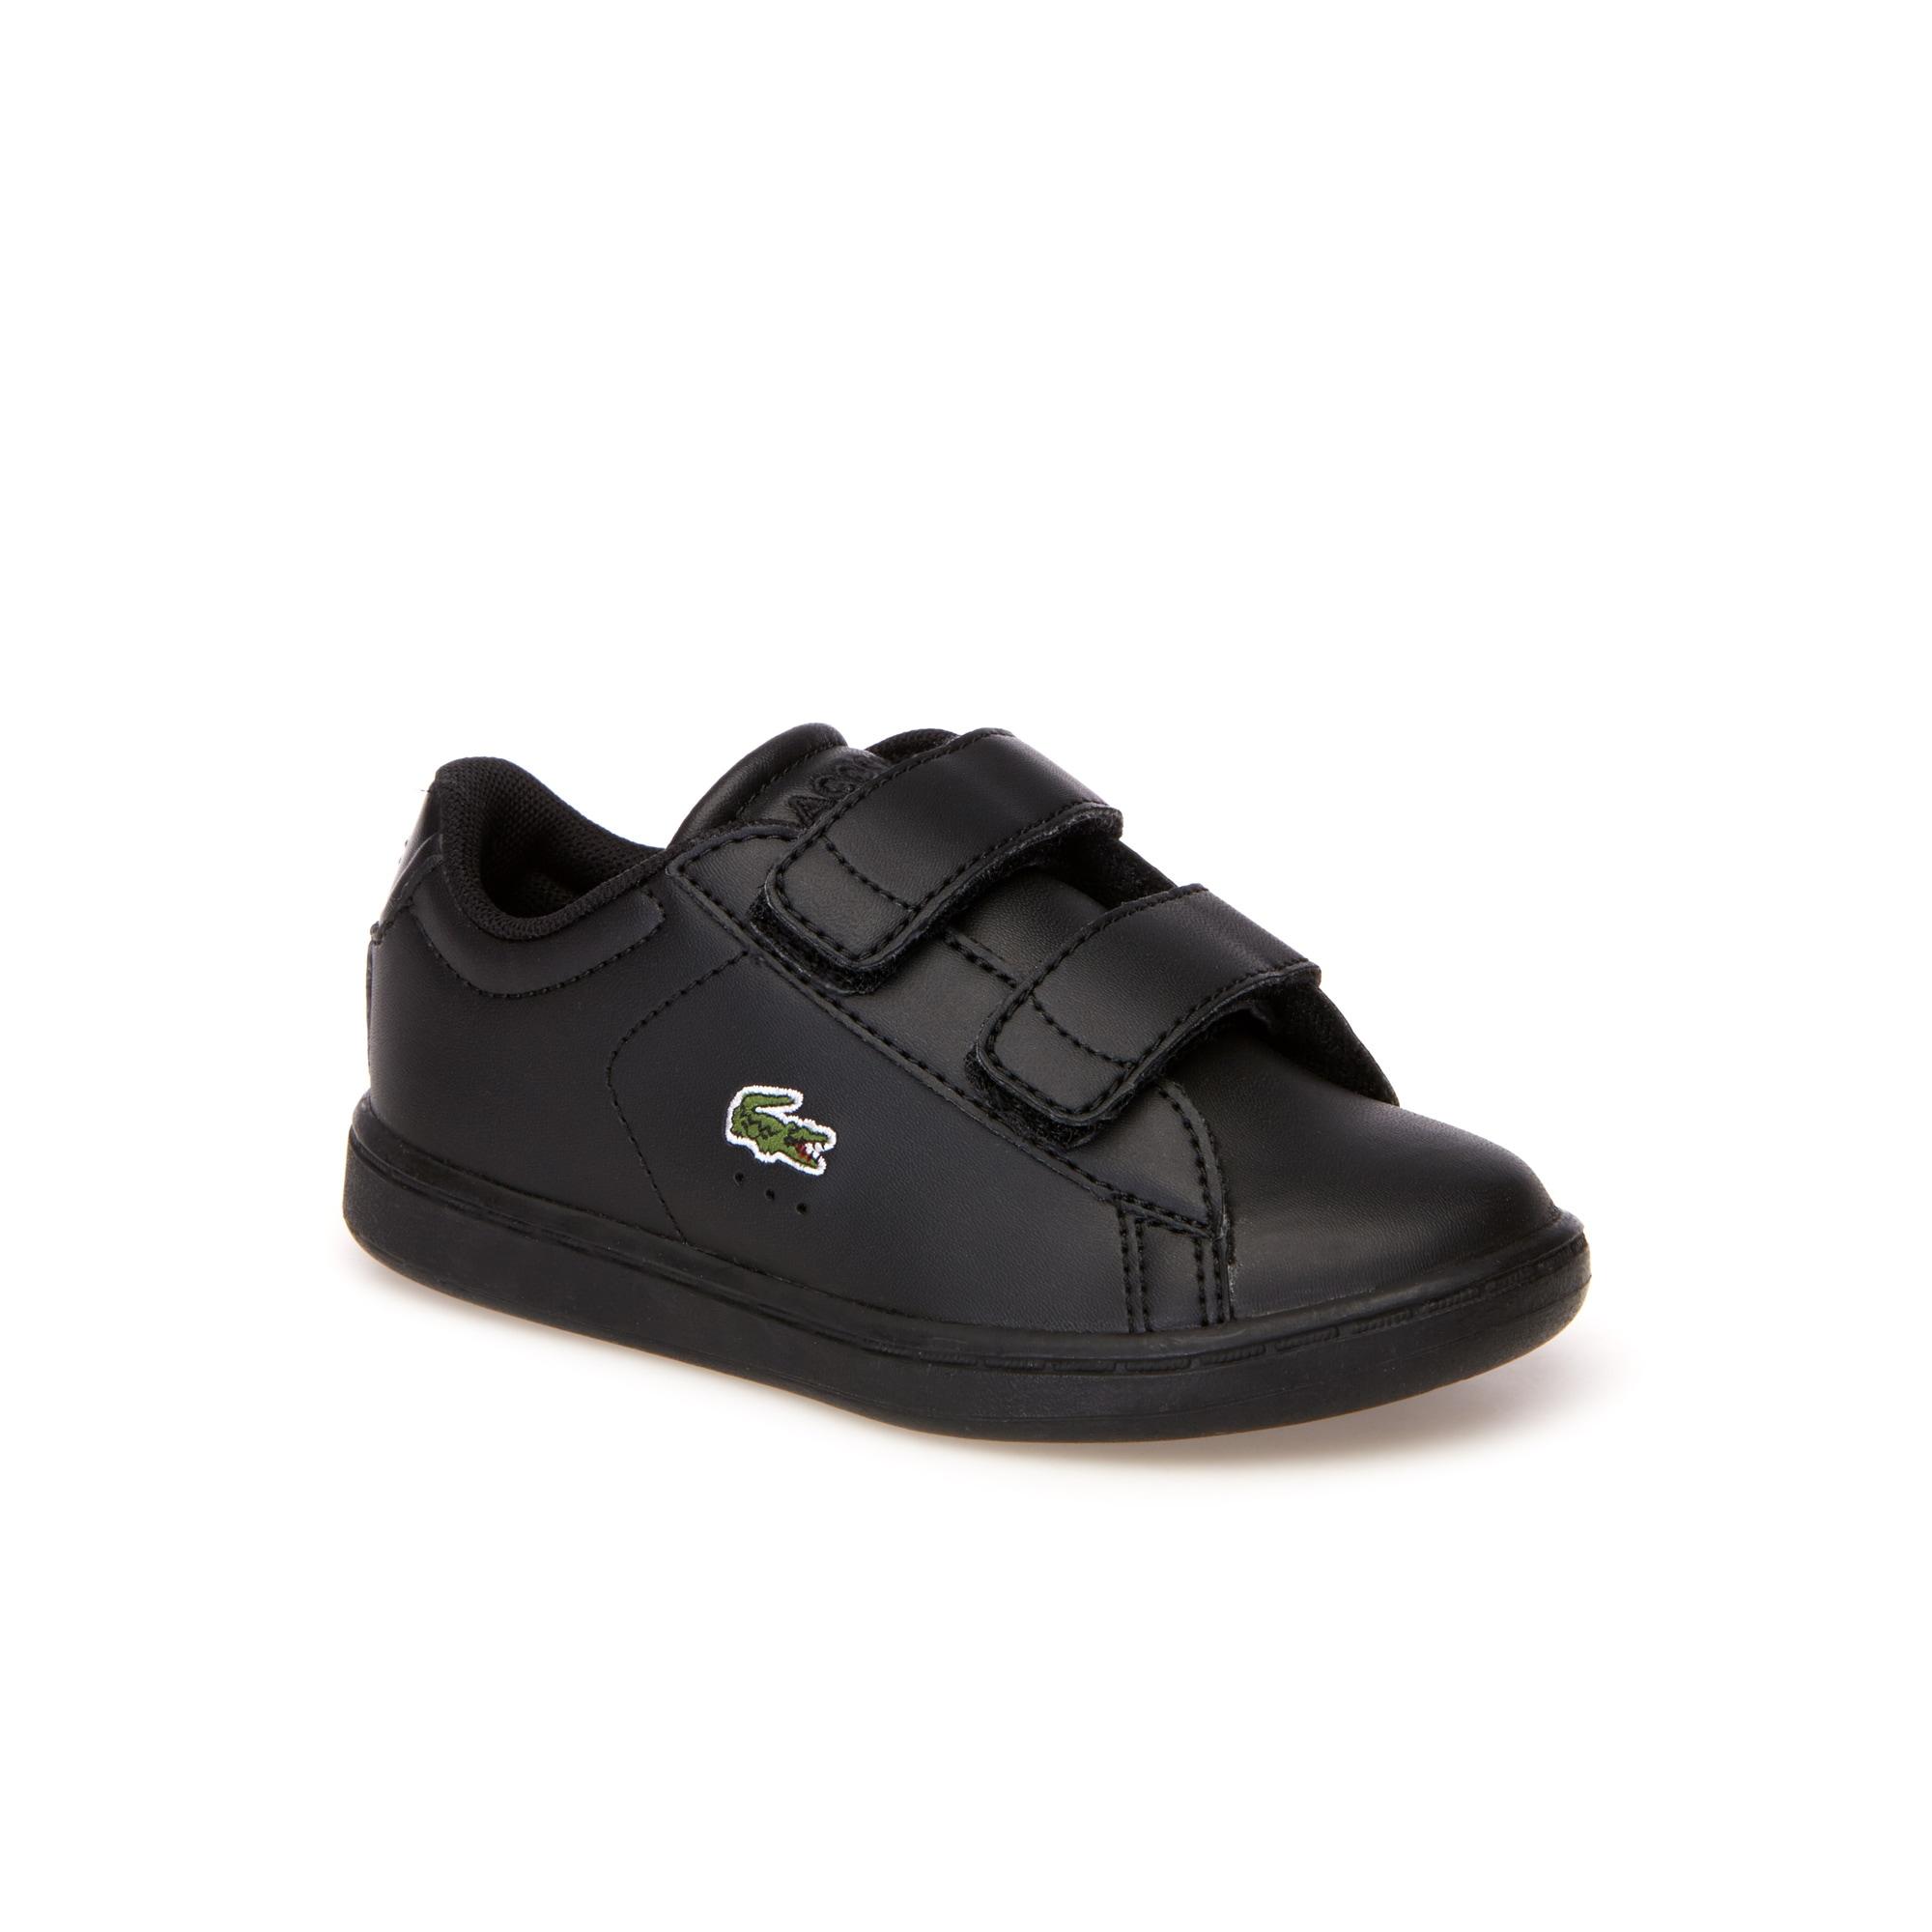 Kinder-Sneakers CARNABY EVO in Leder-Optik